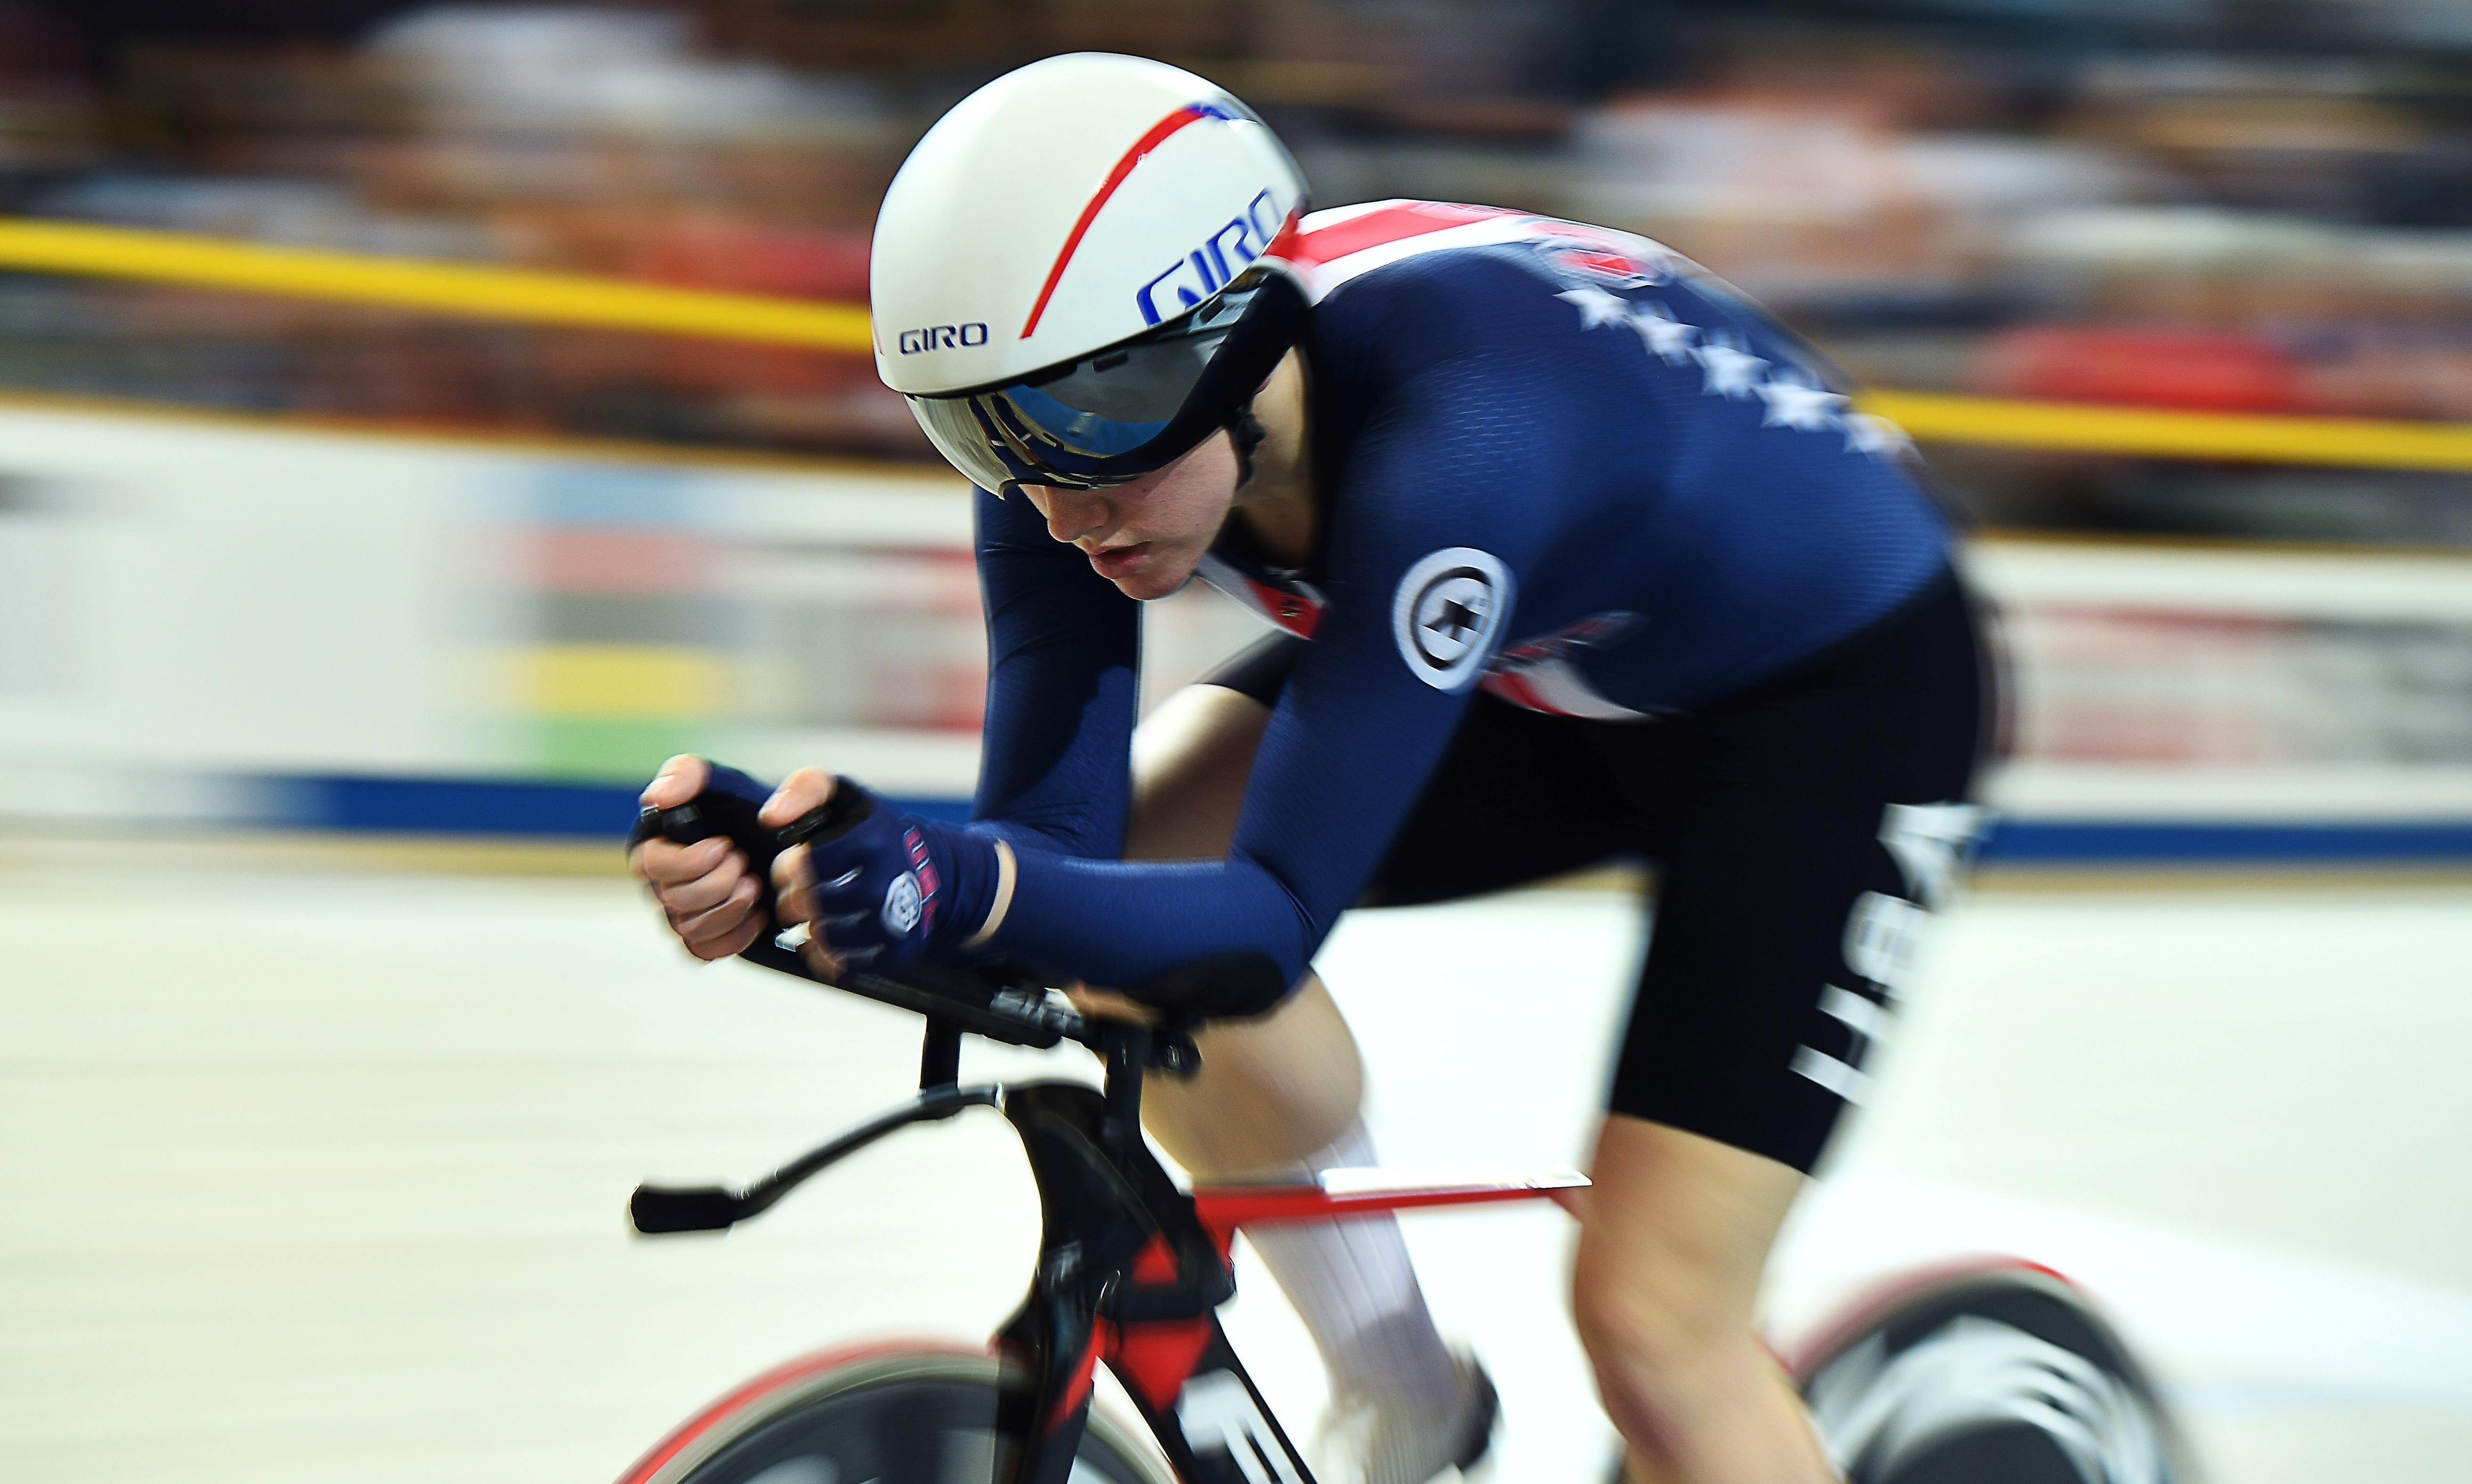 'She had changed': Did a concussion push Kelly Catlin to a breaking point?